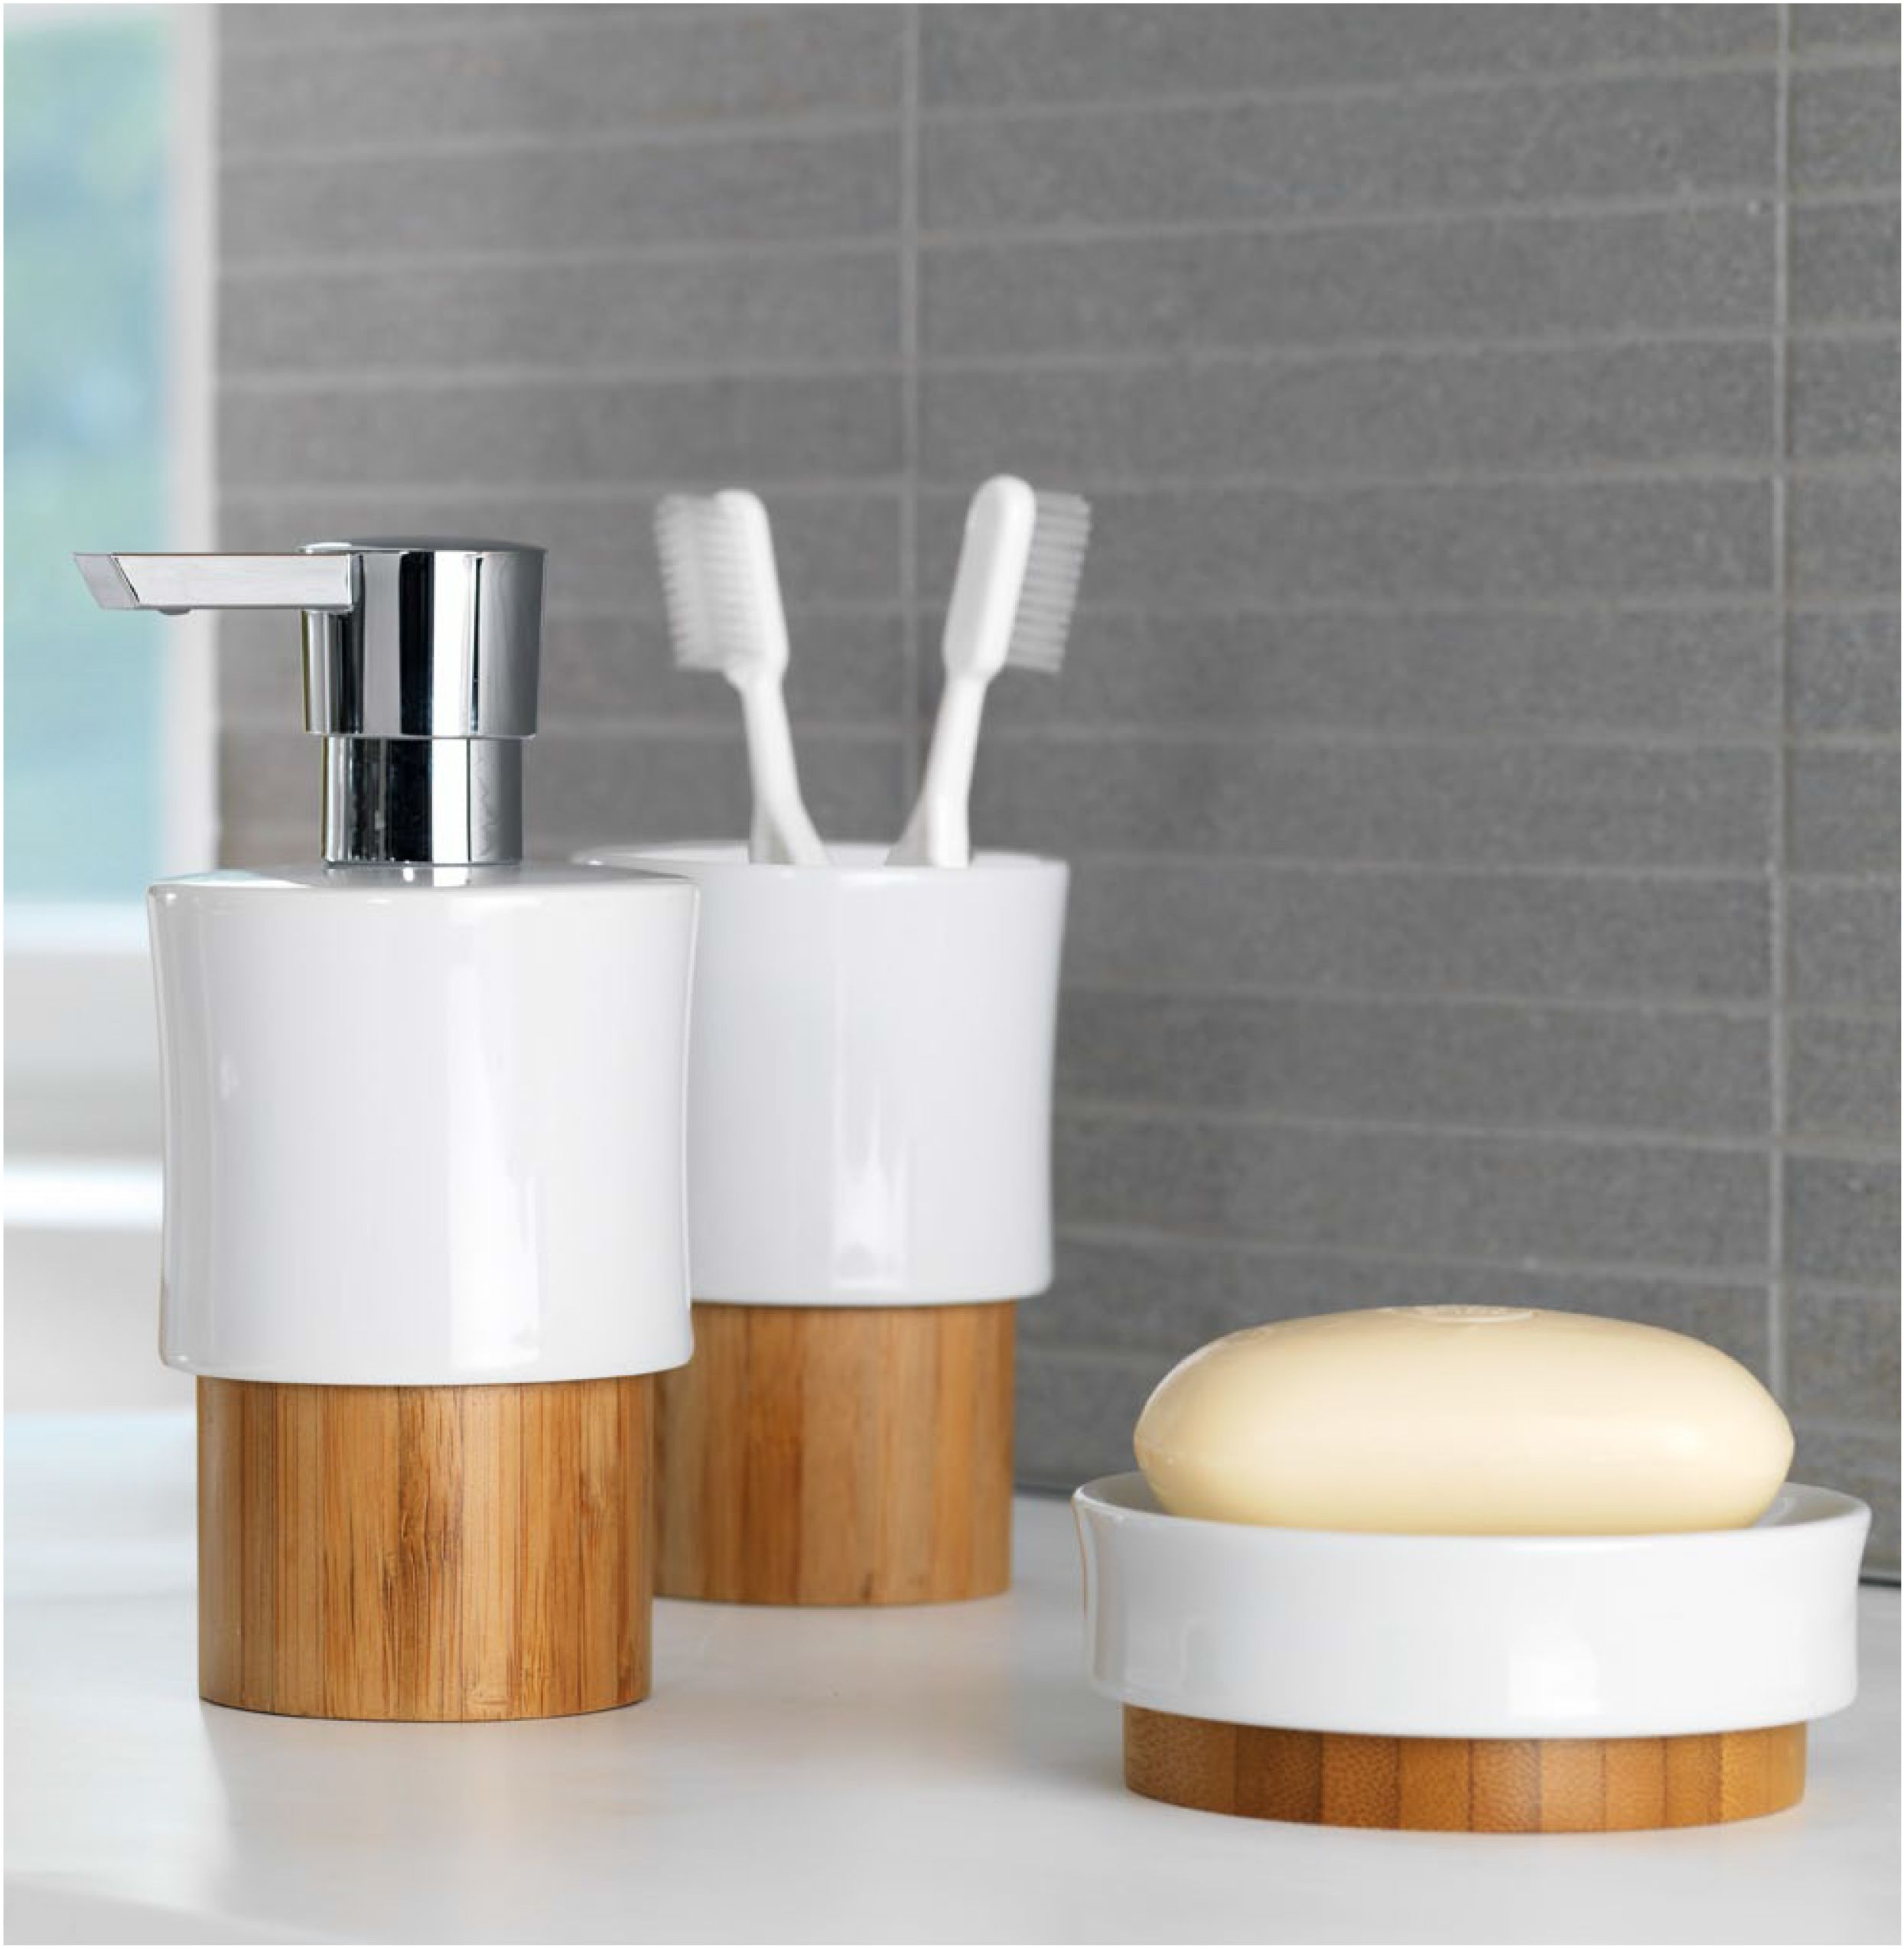 Stoneware bathroom accessories -  Spirella Fjord Bamboo Bathroom Accessories Bathroom Bamboo